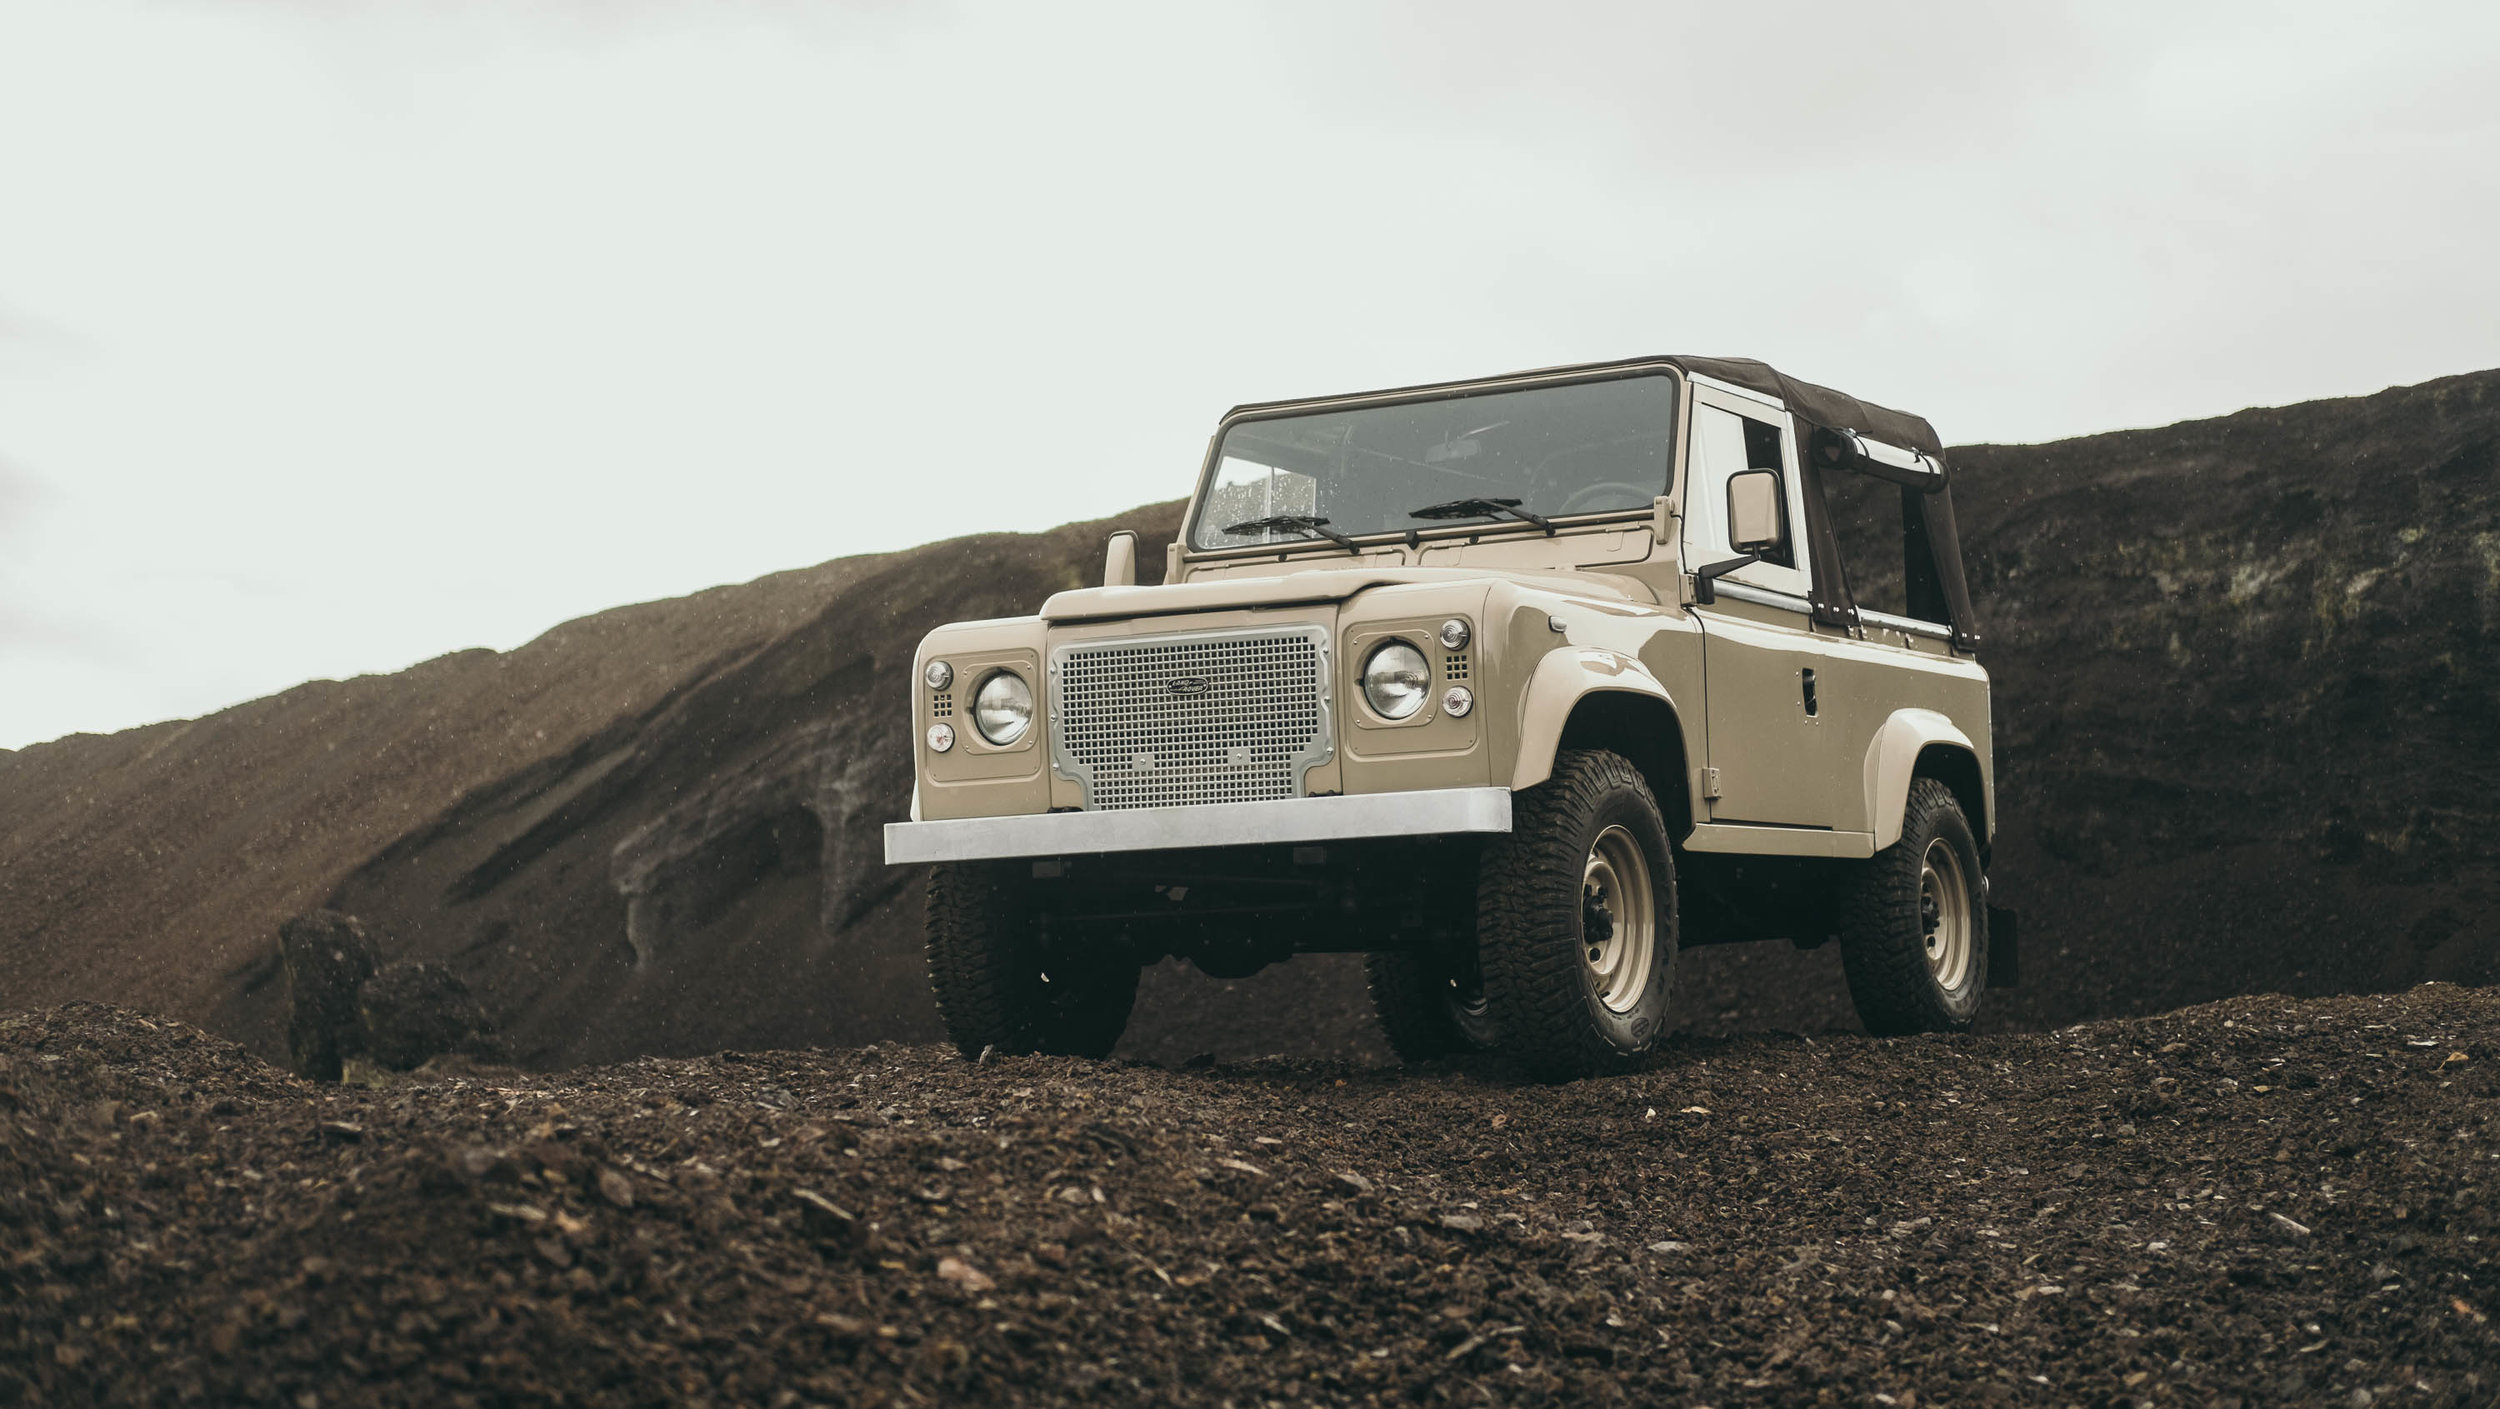 coolnvintage Land Rover Defender (76 of 81).jpg